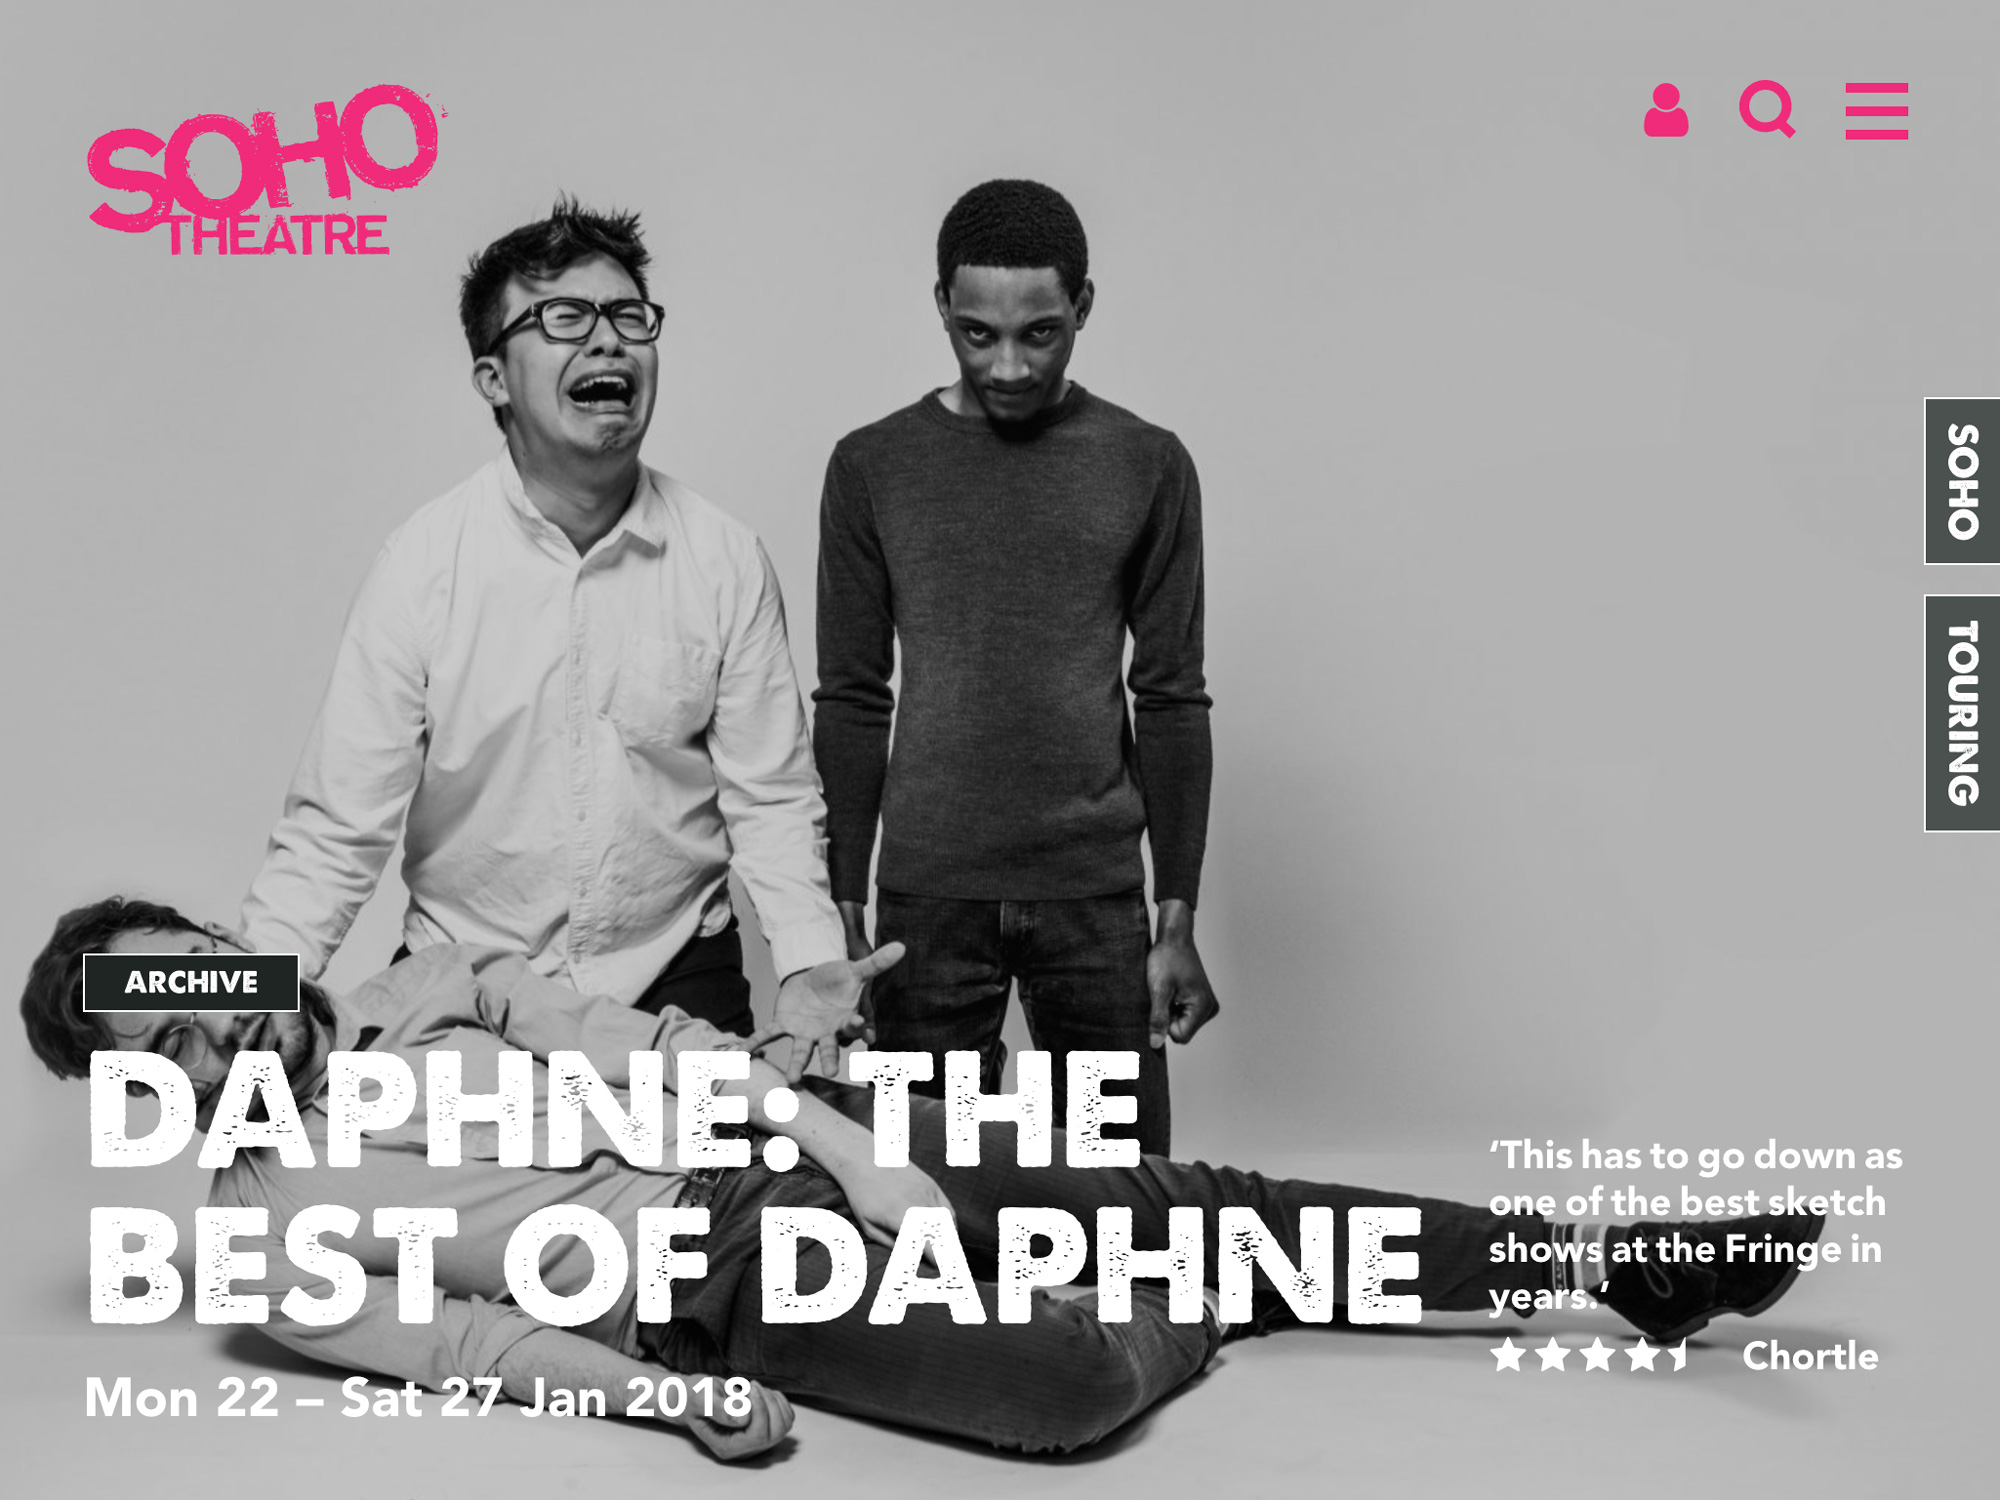 Website page of Soho Theatre, showing the event details for Daphne: The Best of Daphne, with the black and white image of three men in the backgound